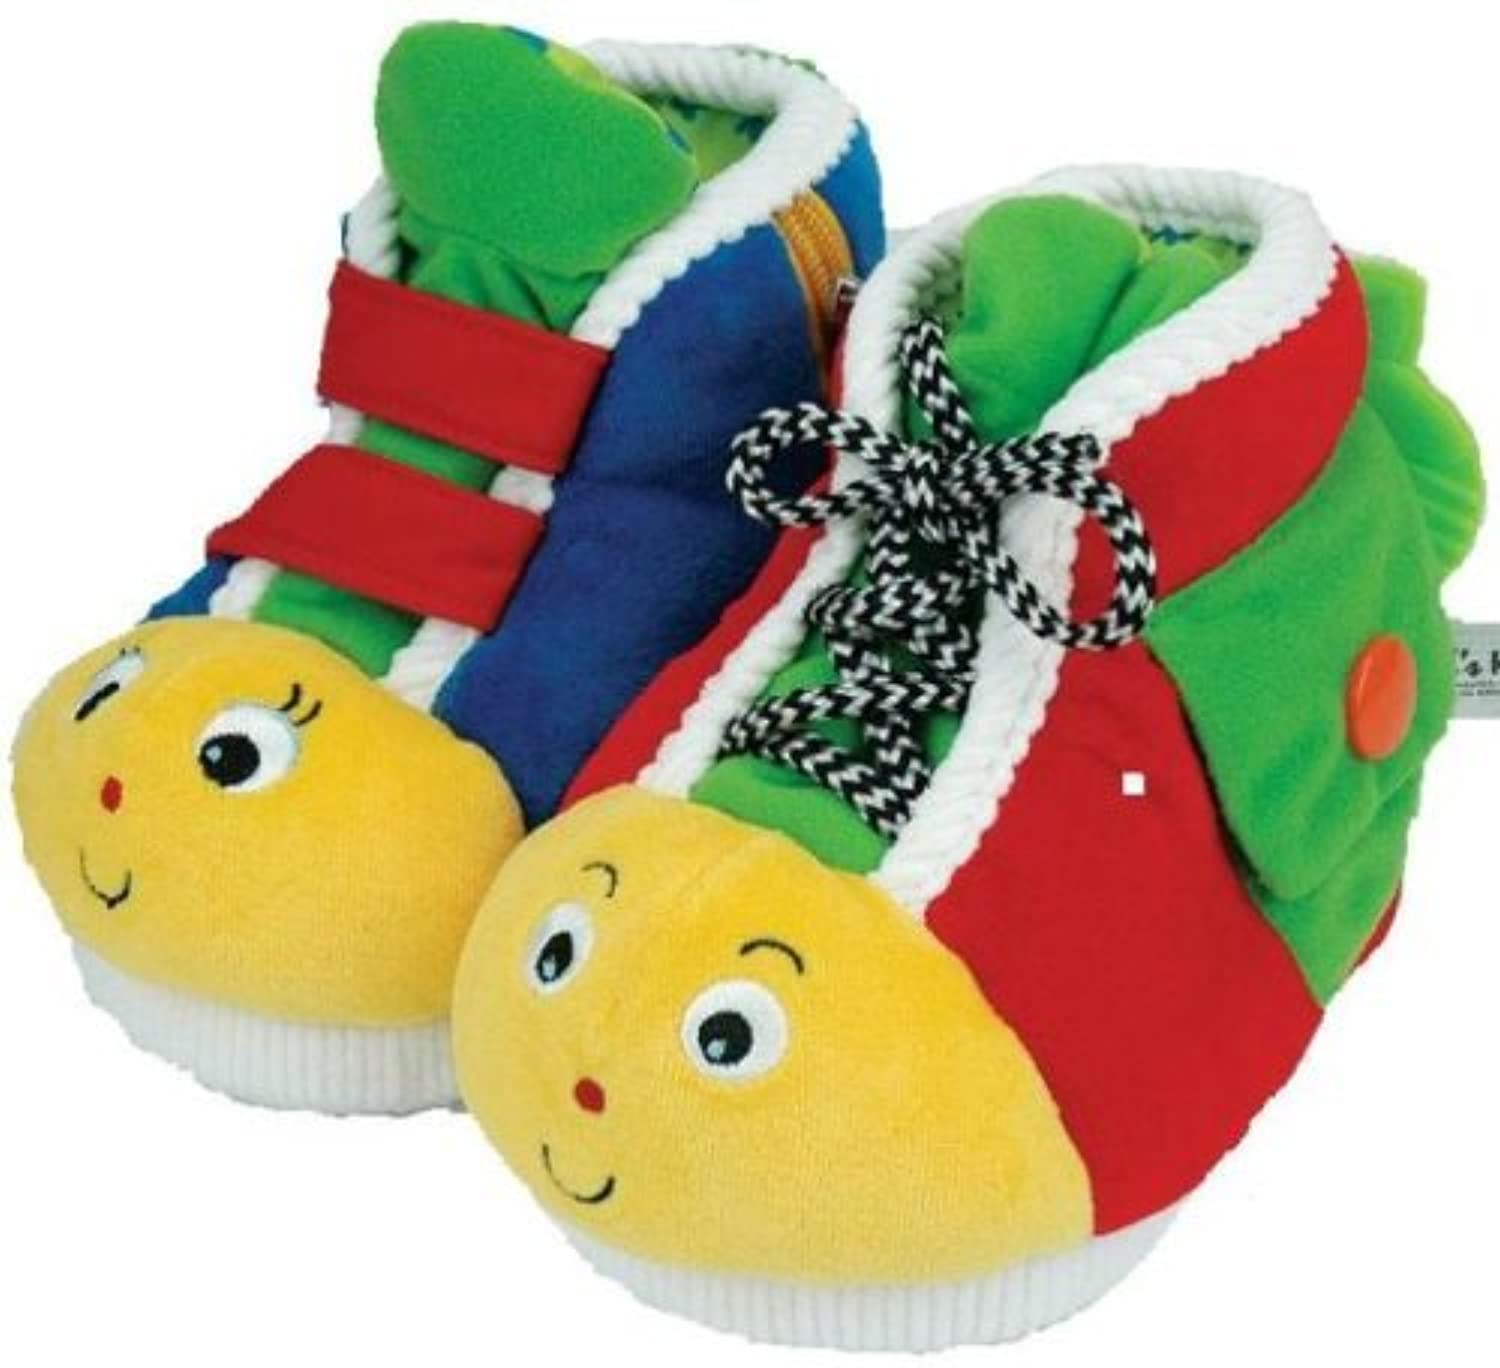 Learning Shoes on Little Feet